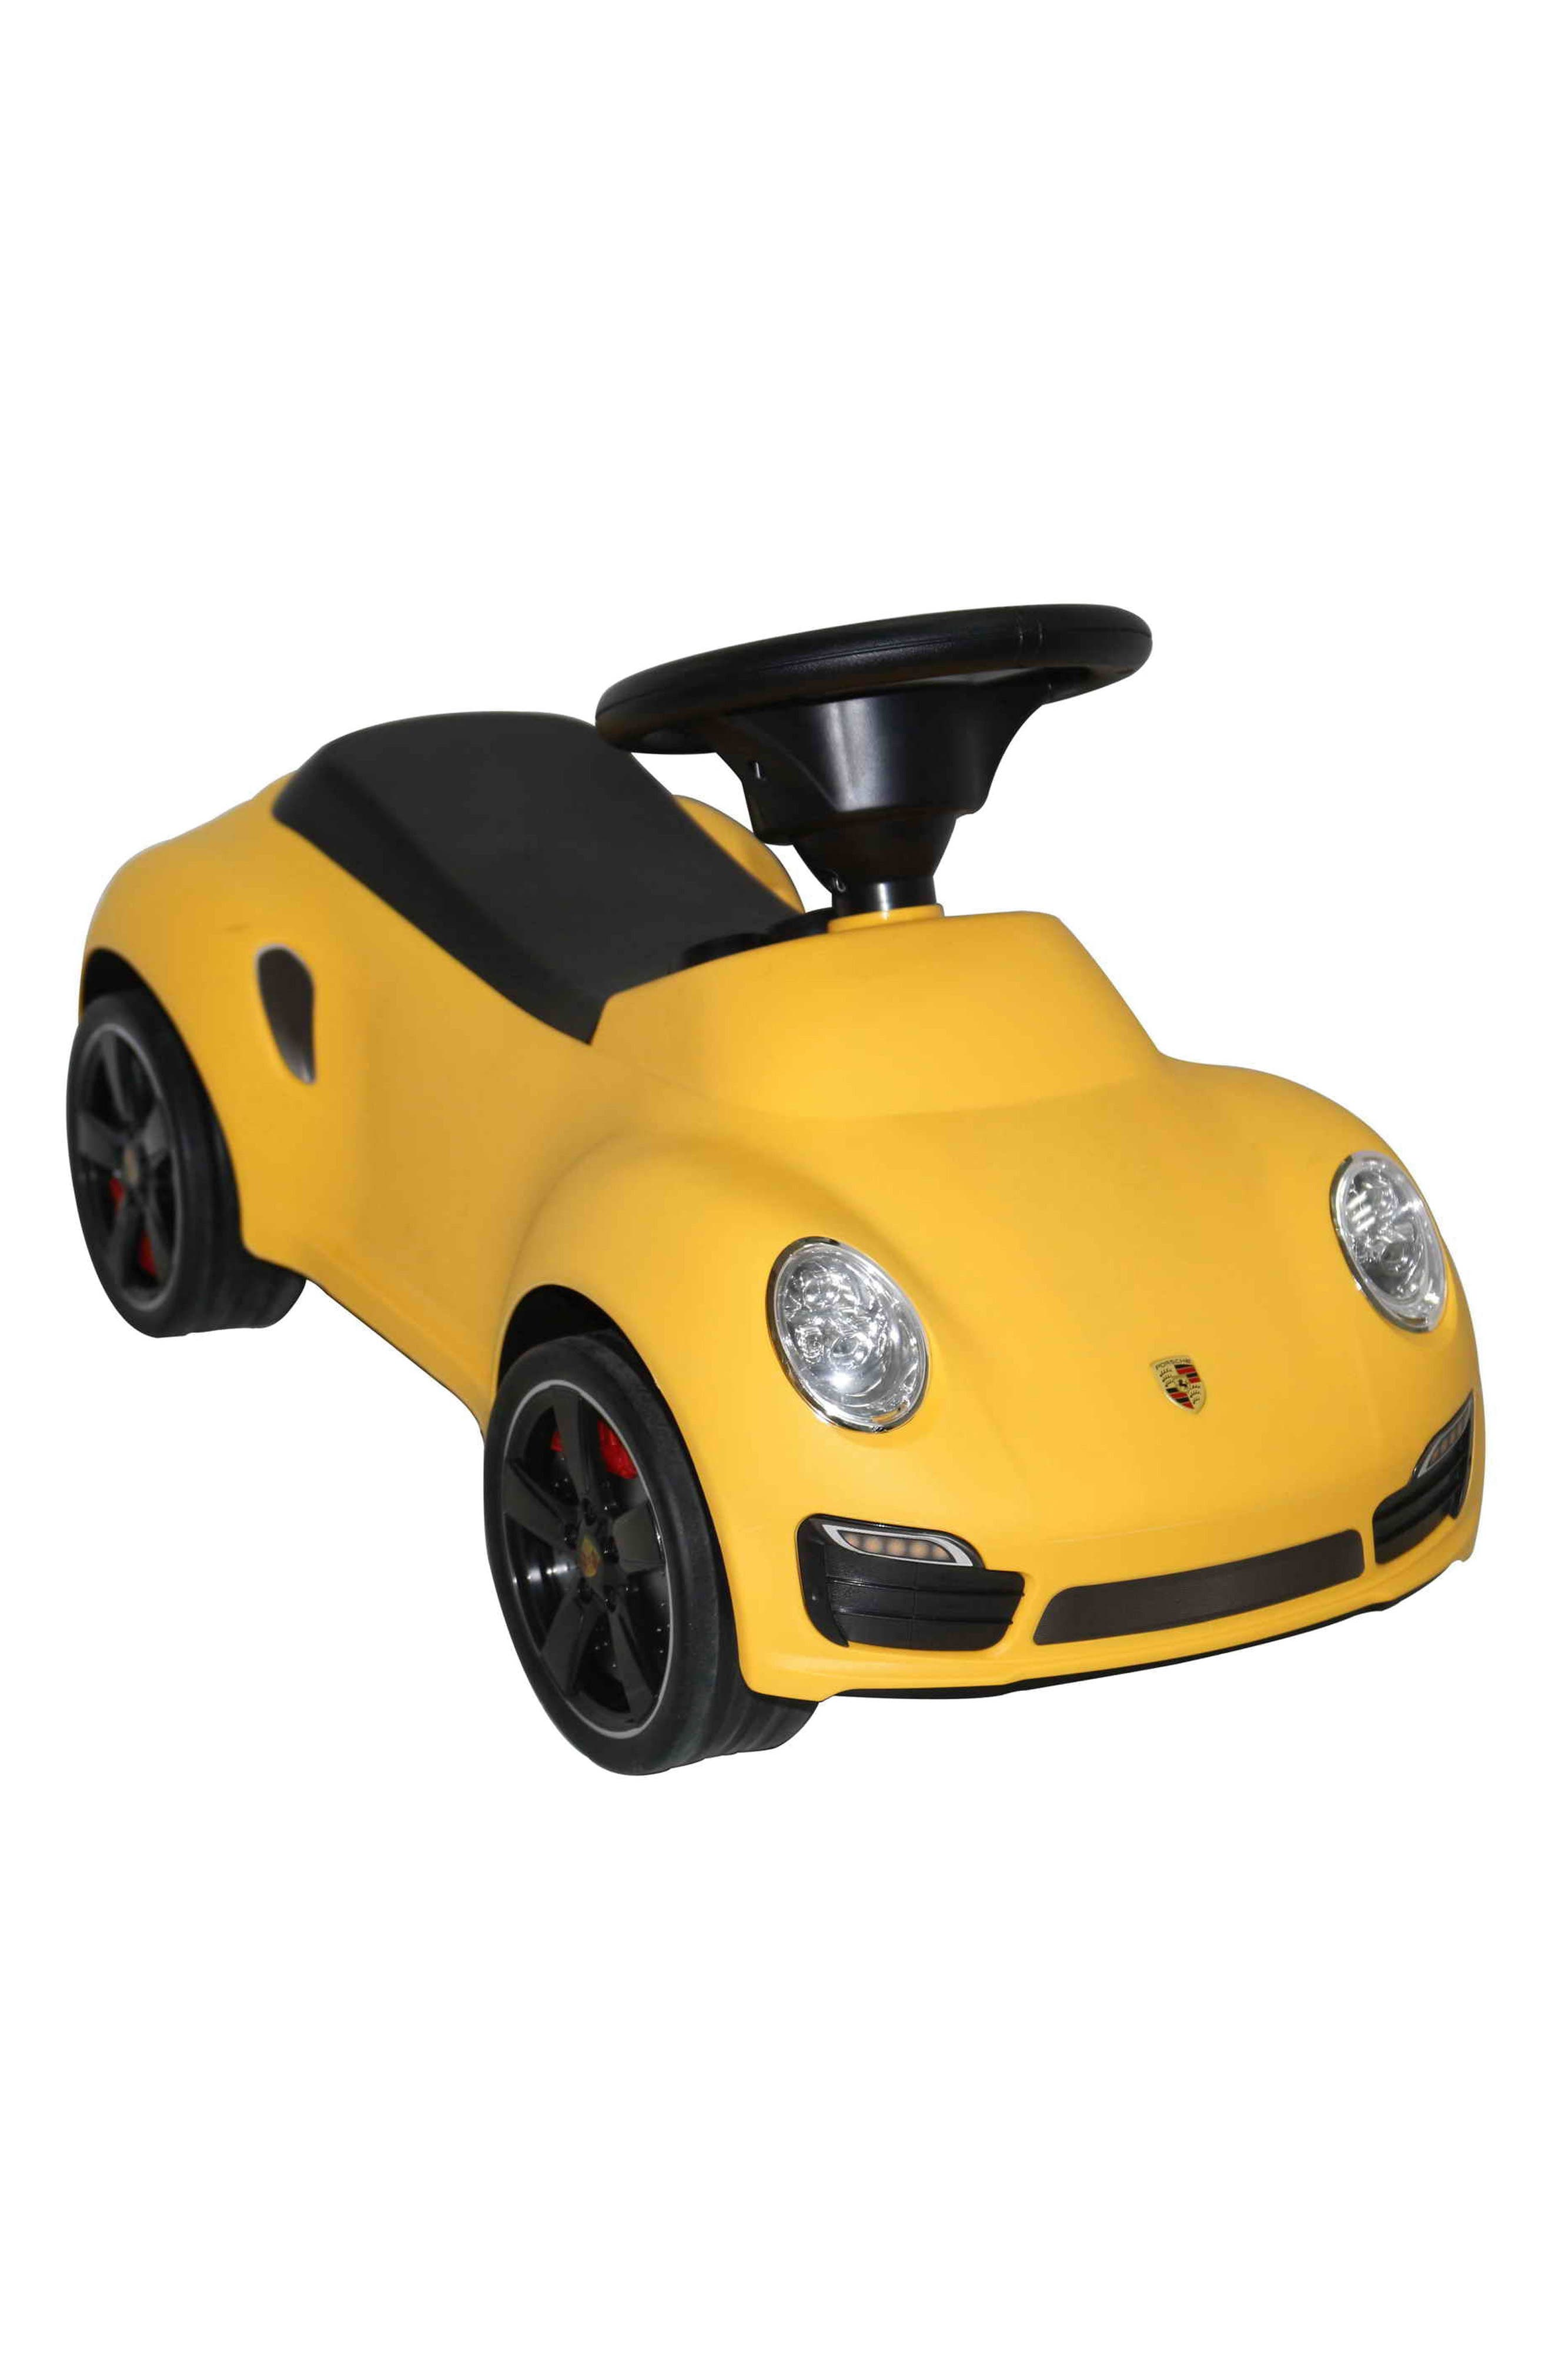 Alternate Image 1 Selected - Best Ride on Cars Porsche Turbo 911 Ride-On Push Car